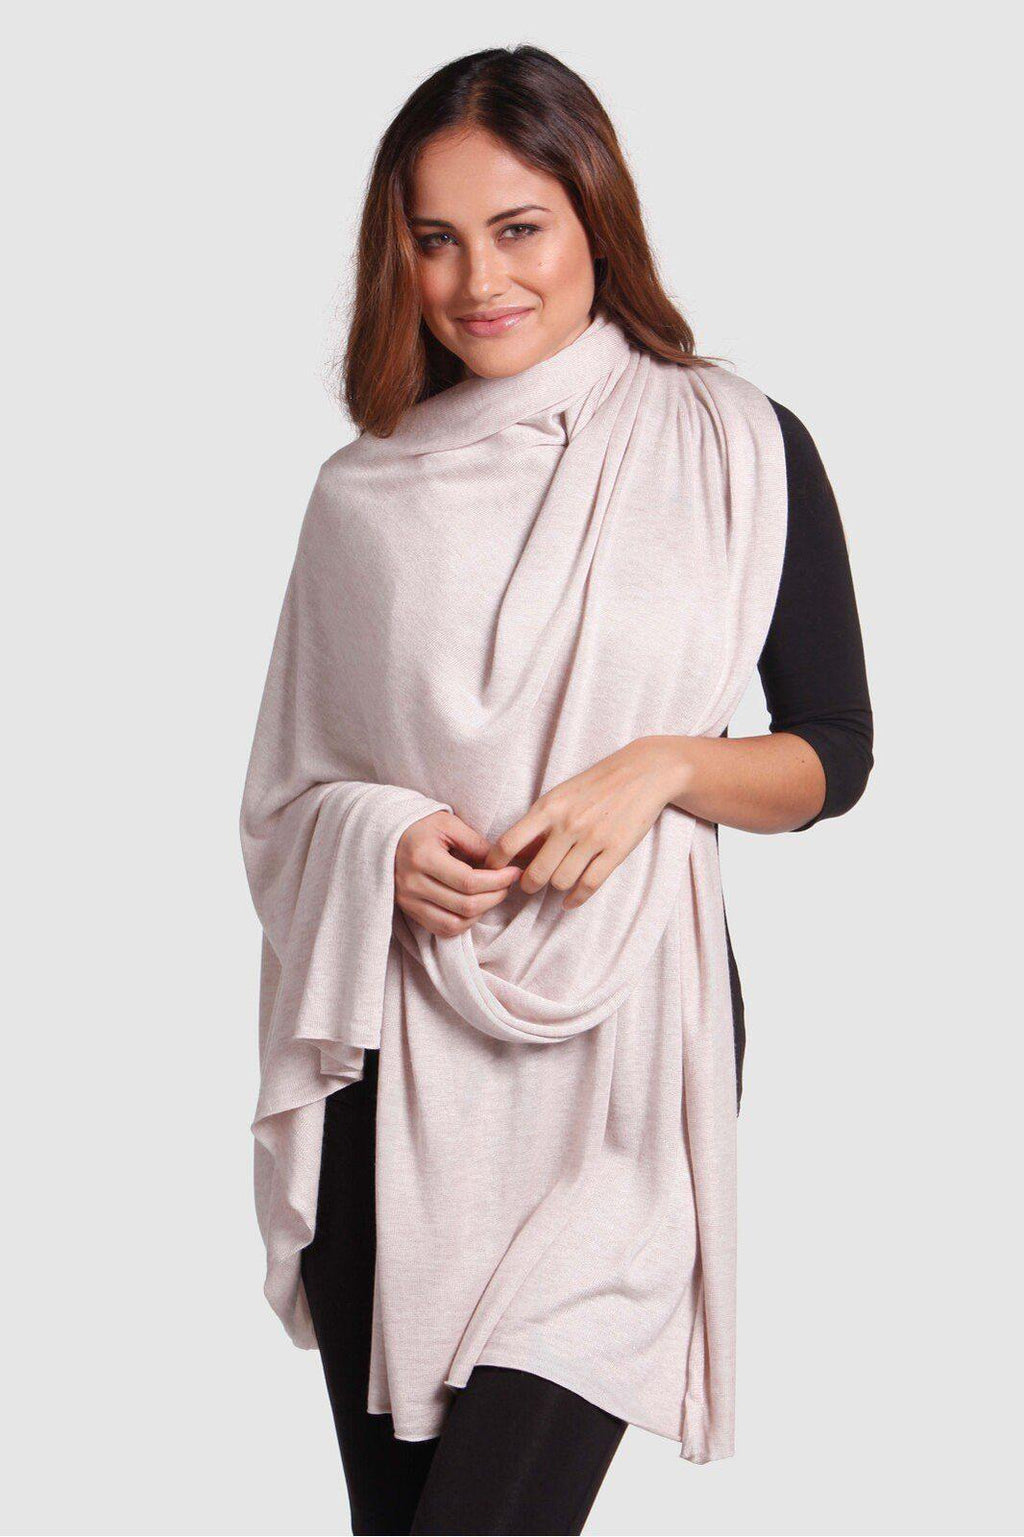 Bamboo Body Bamboo Cashmere Wool Blend Travel Wrap | Buy Online at Weekends